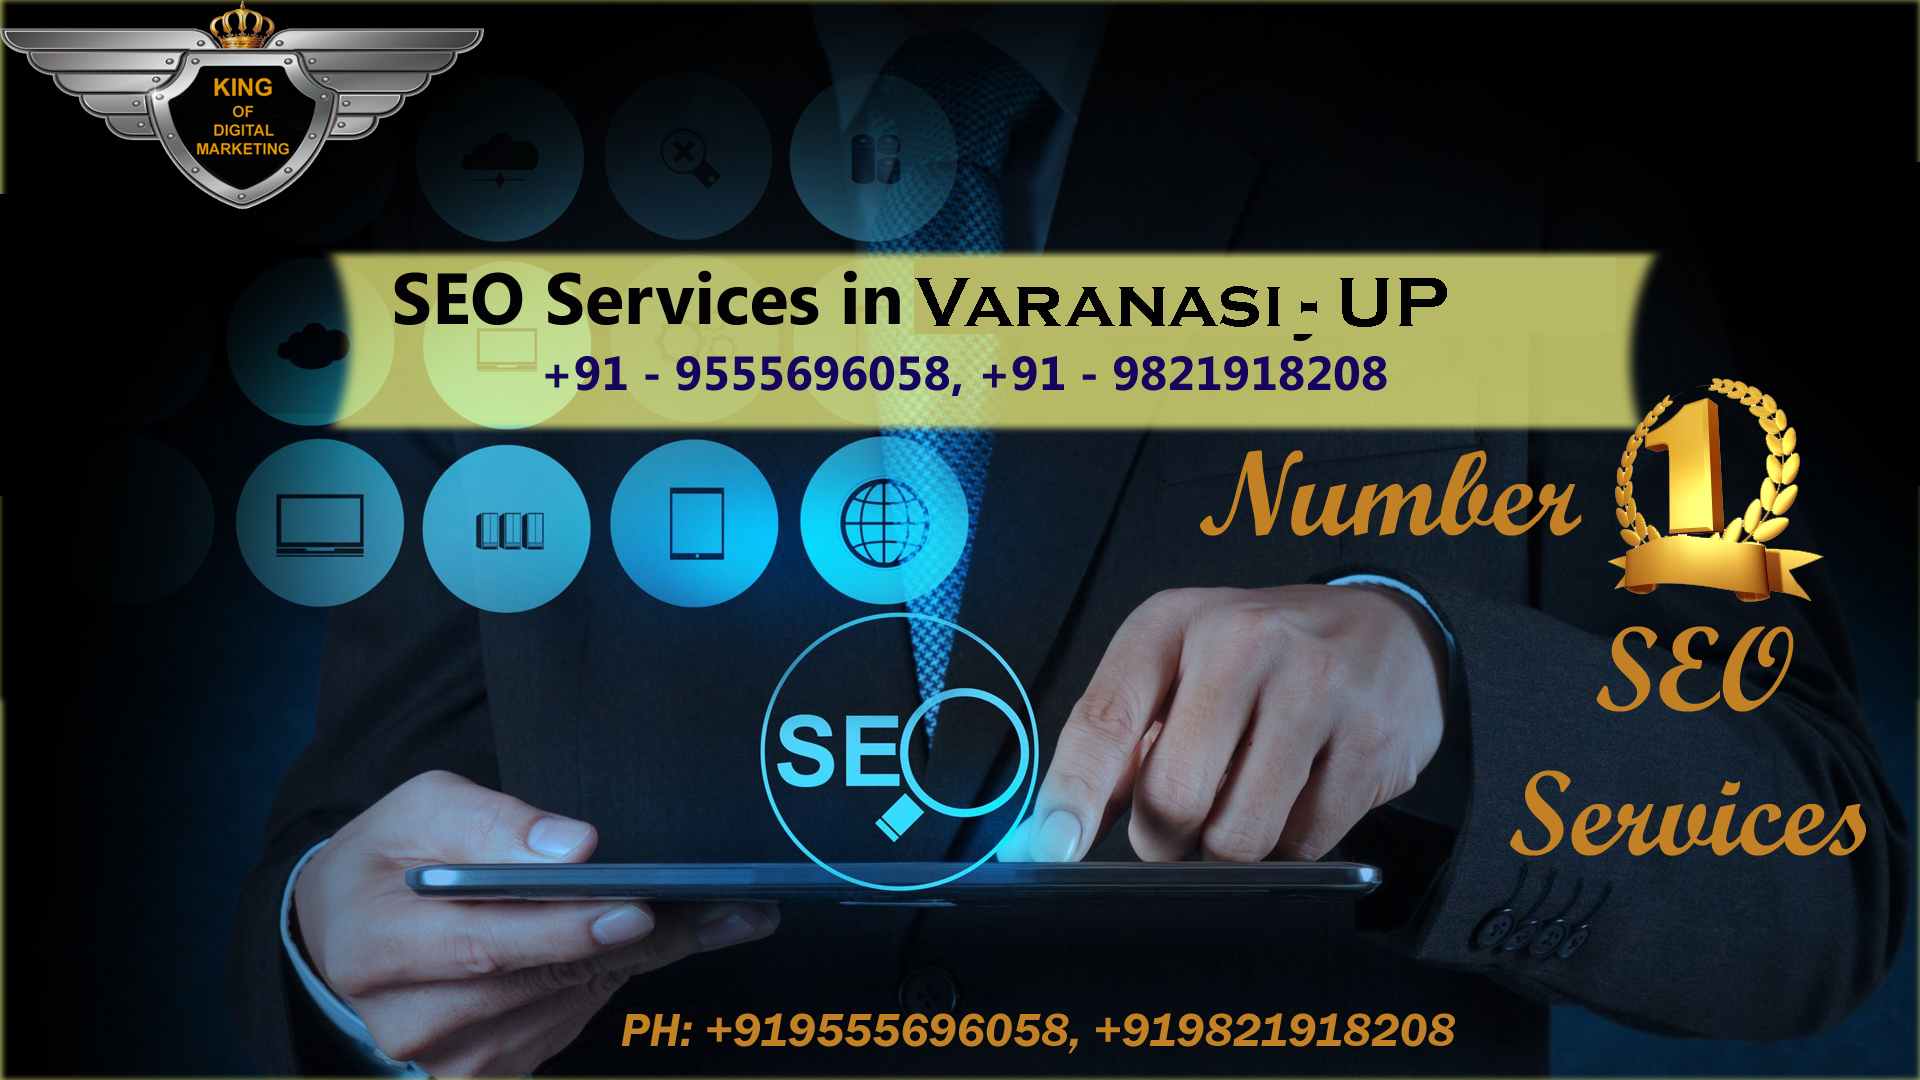 seo company in varanasi, website development varanasi digital marketing